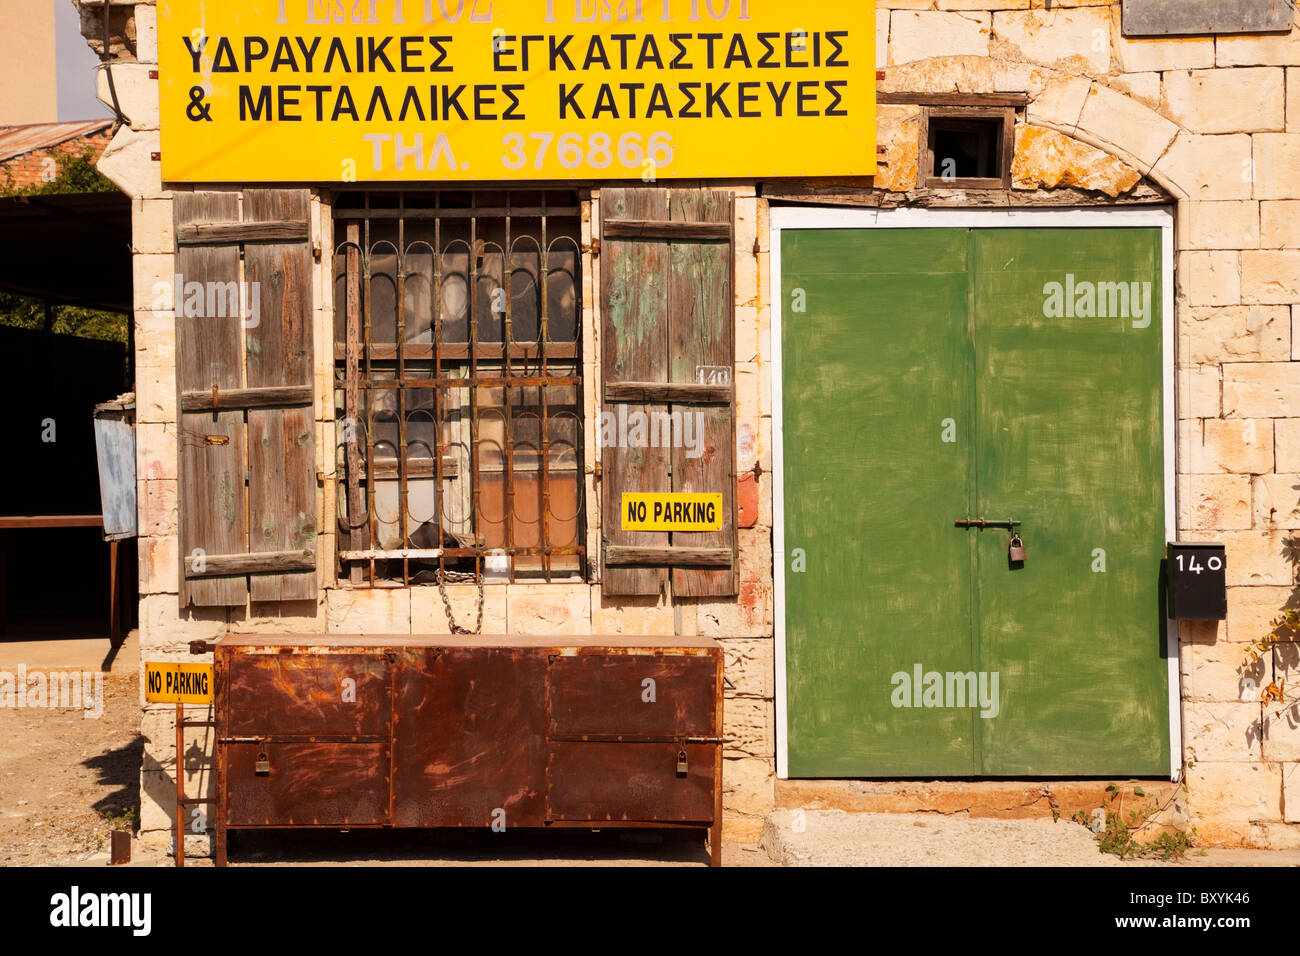 Old, run down shop in Limassol, Cyprus. - Stock Image